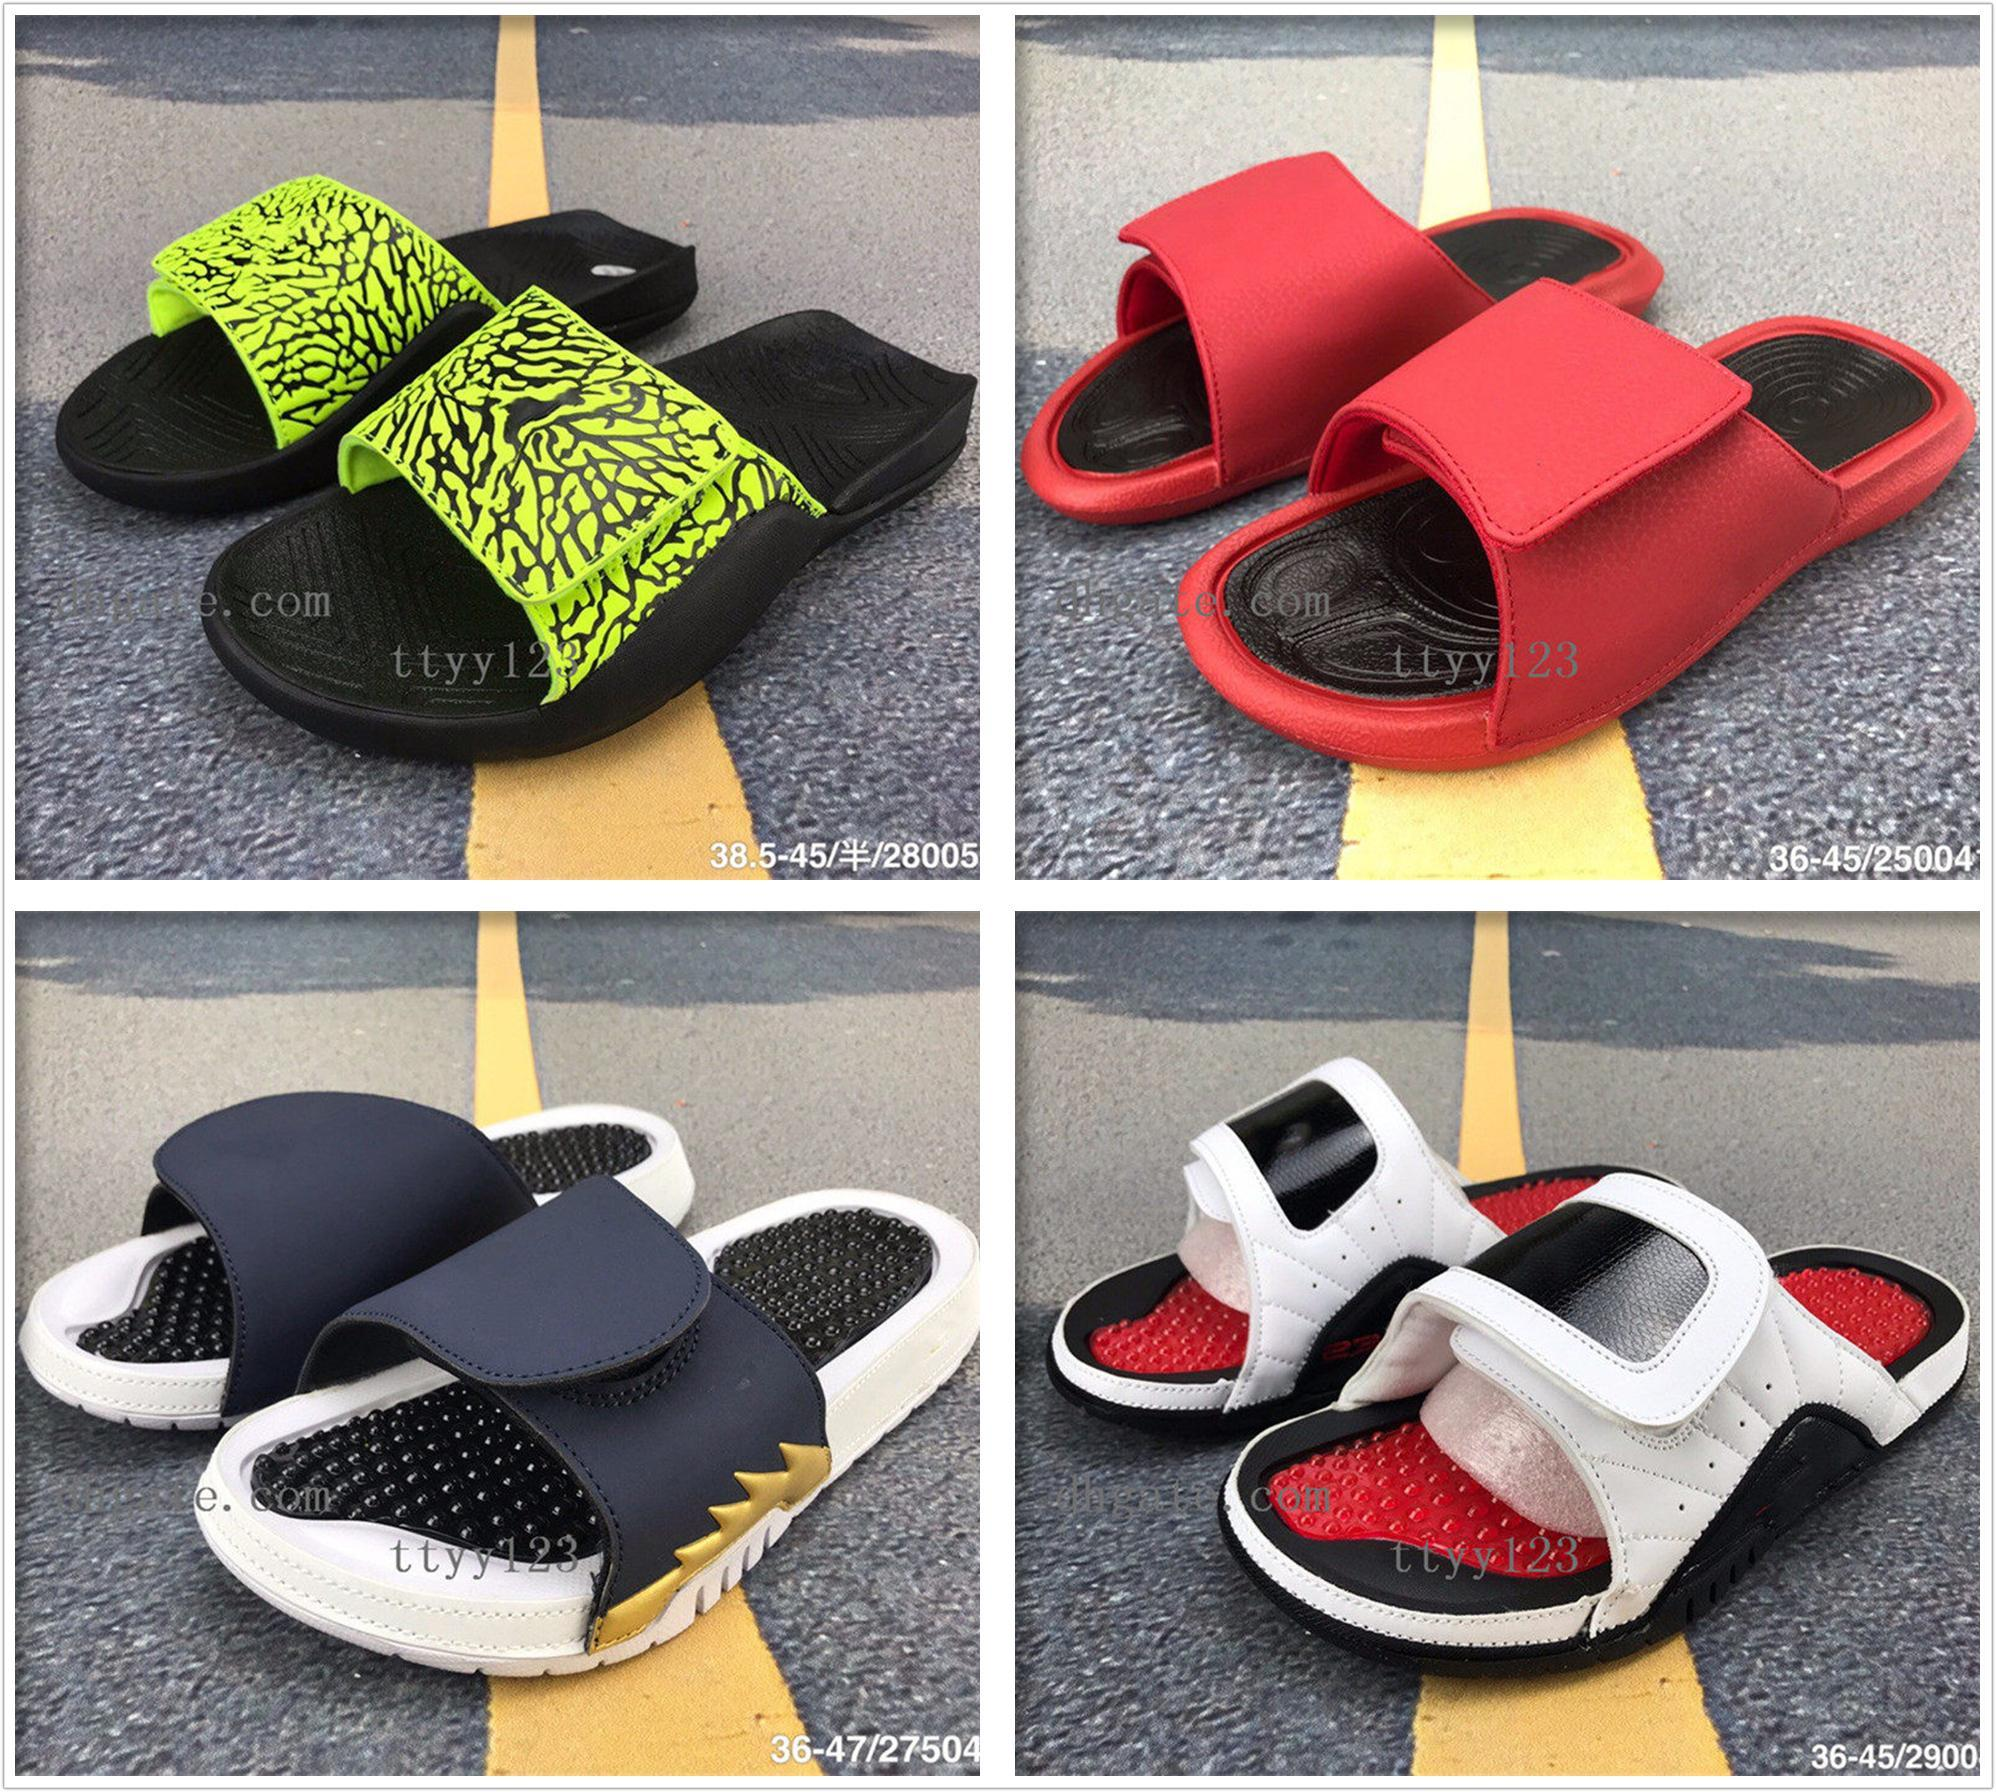 2020 Slipper 6 Sandals Flame 4 Camouflage Multicolor Massage 7 Slippers 5s Red White Black Slides Shoes Outdoor Casual Sports Slipper 36-45